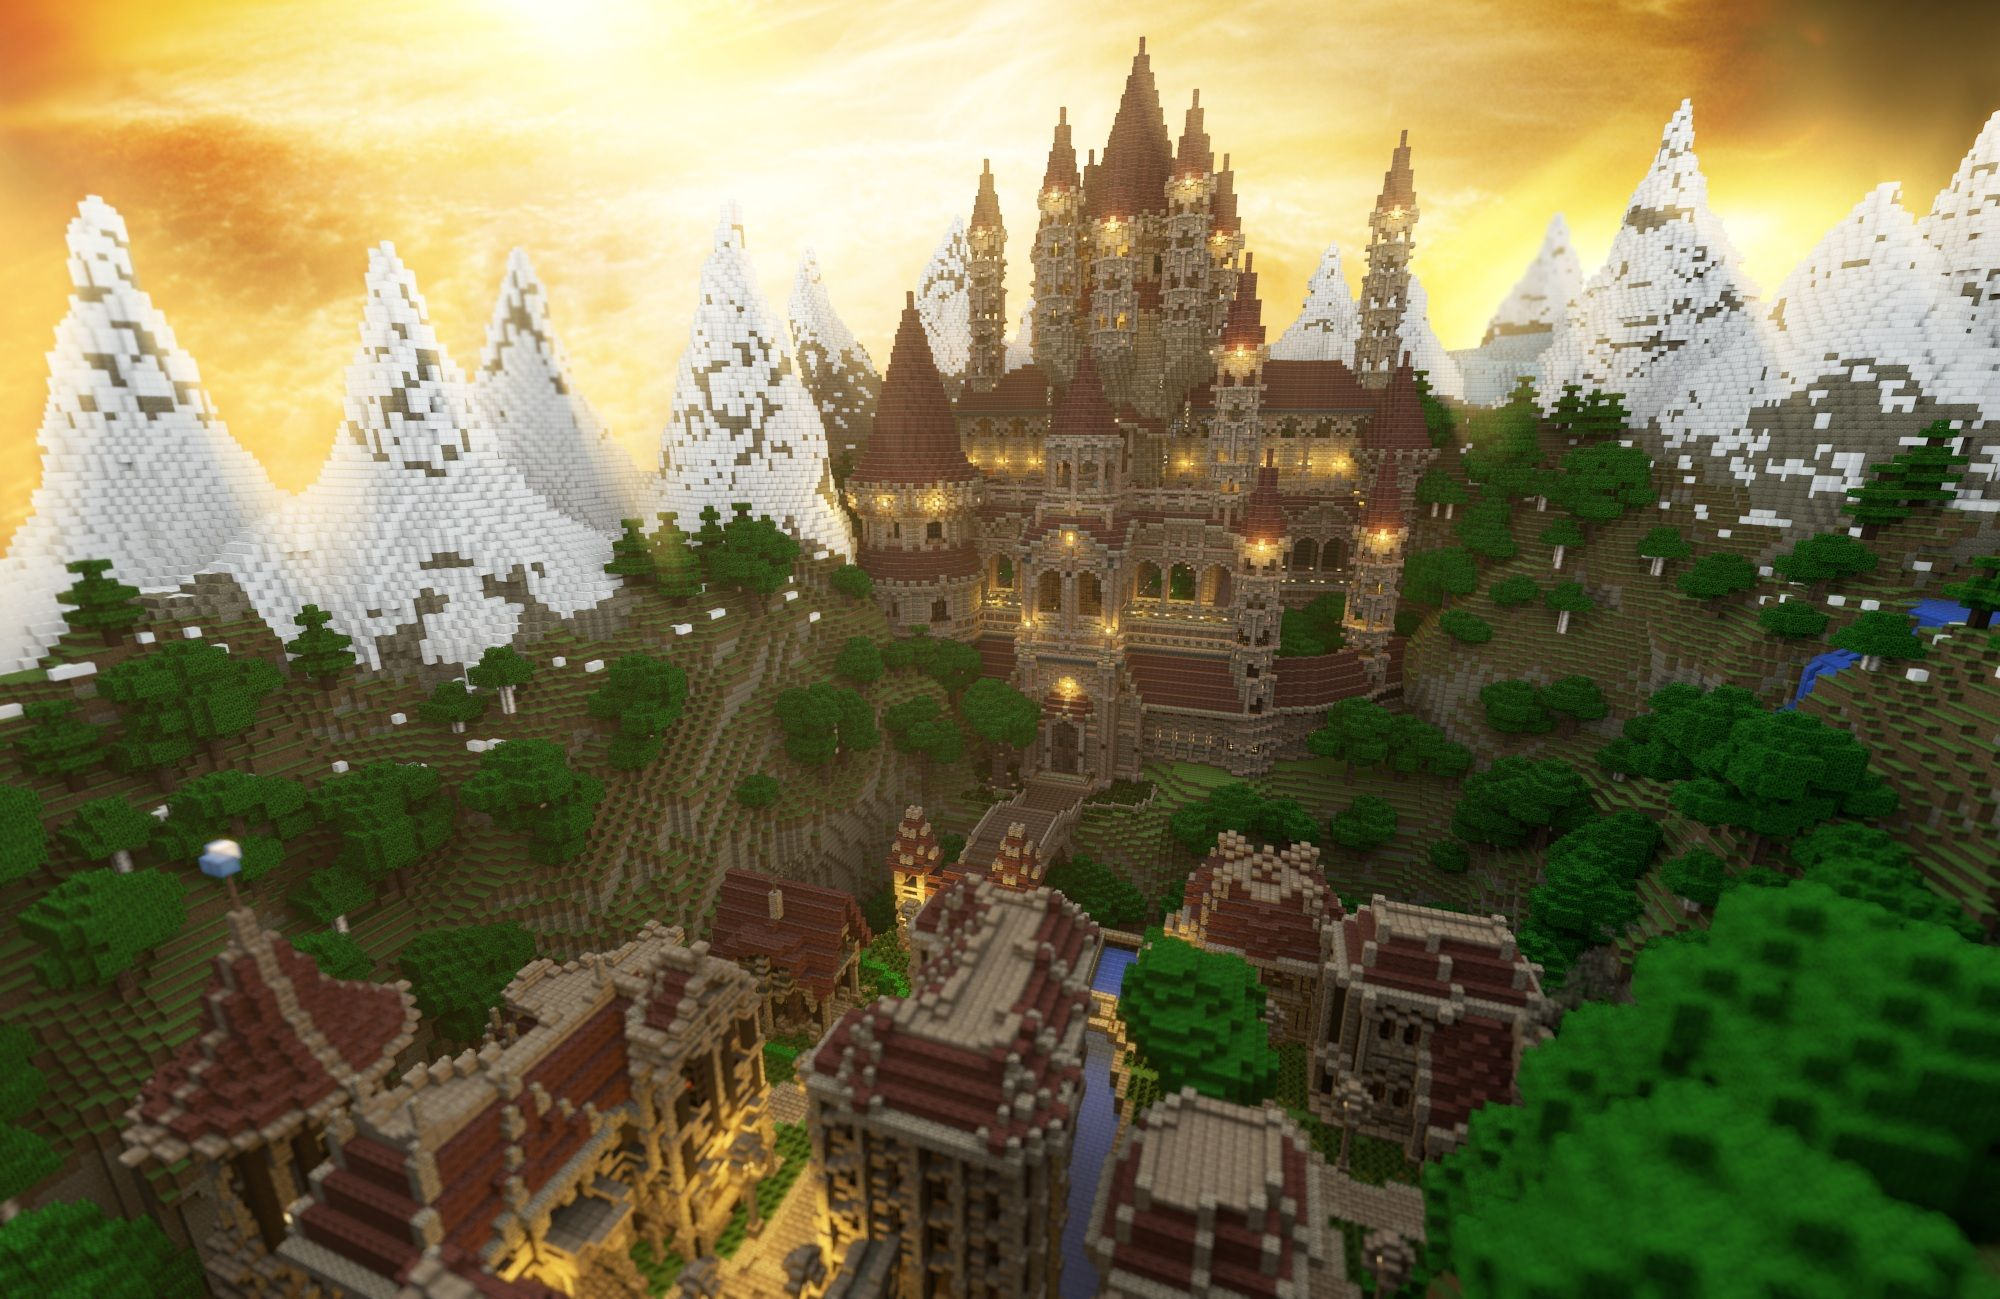 Render of my new upcoming adventure map Minecraft city